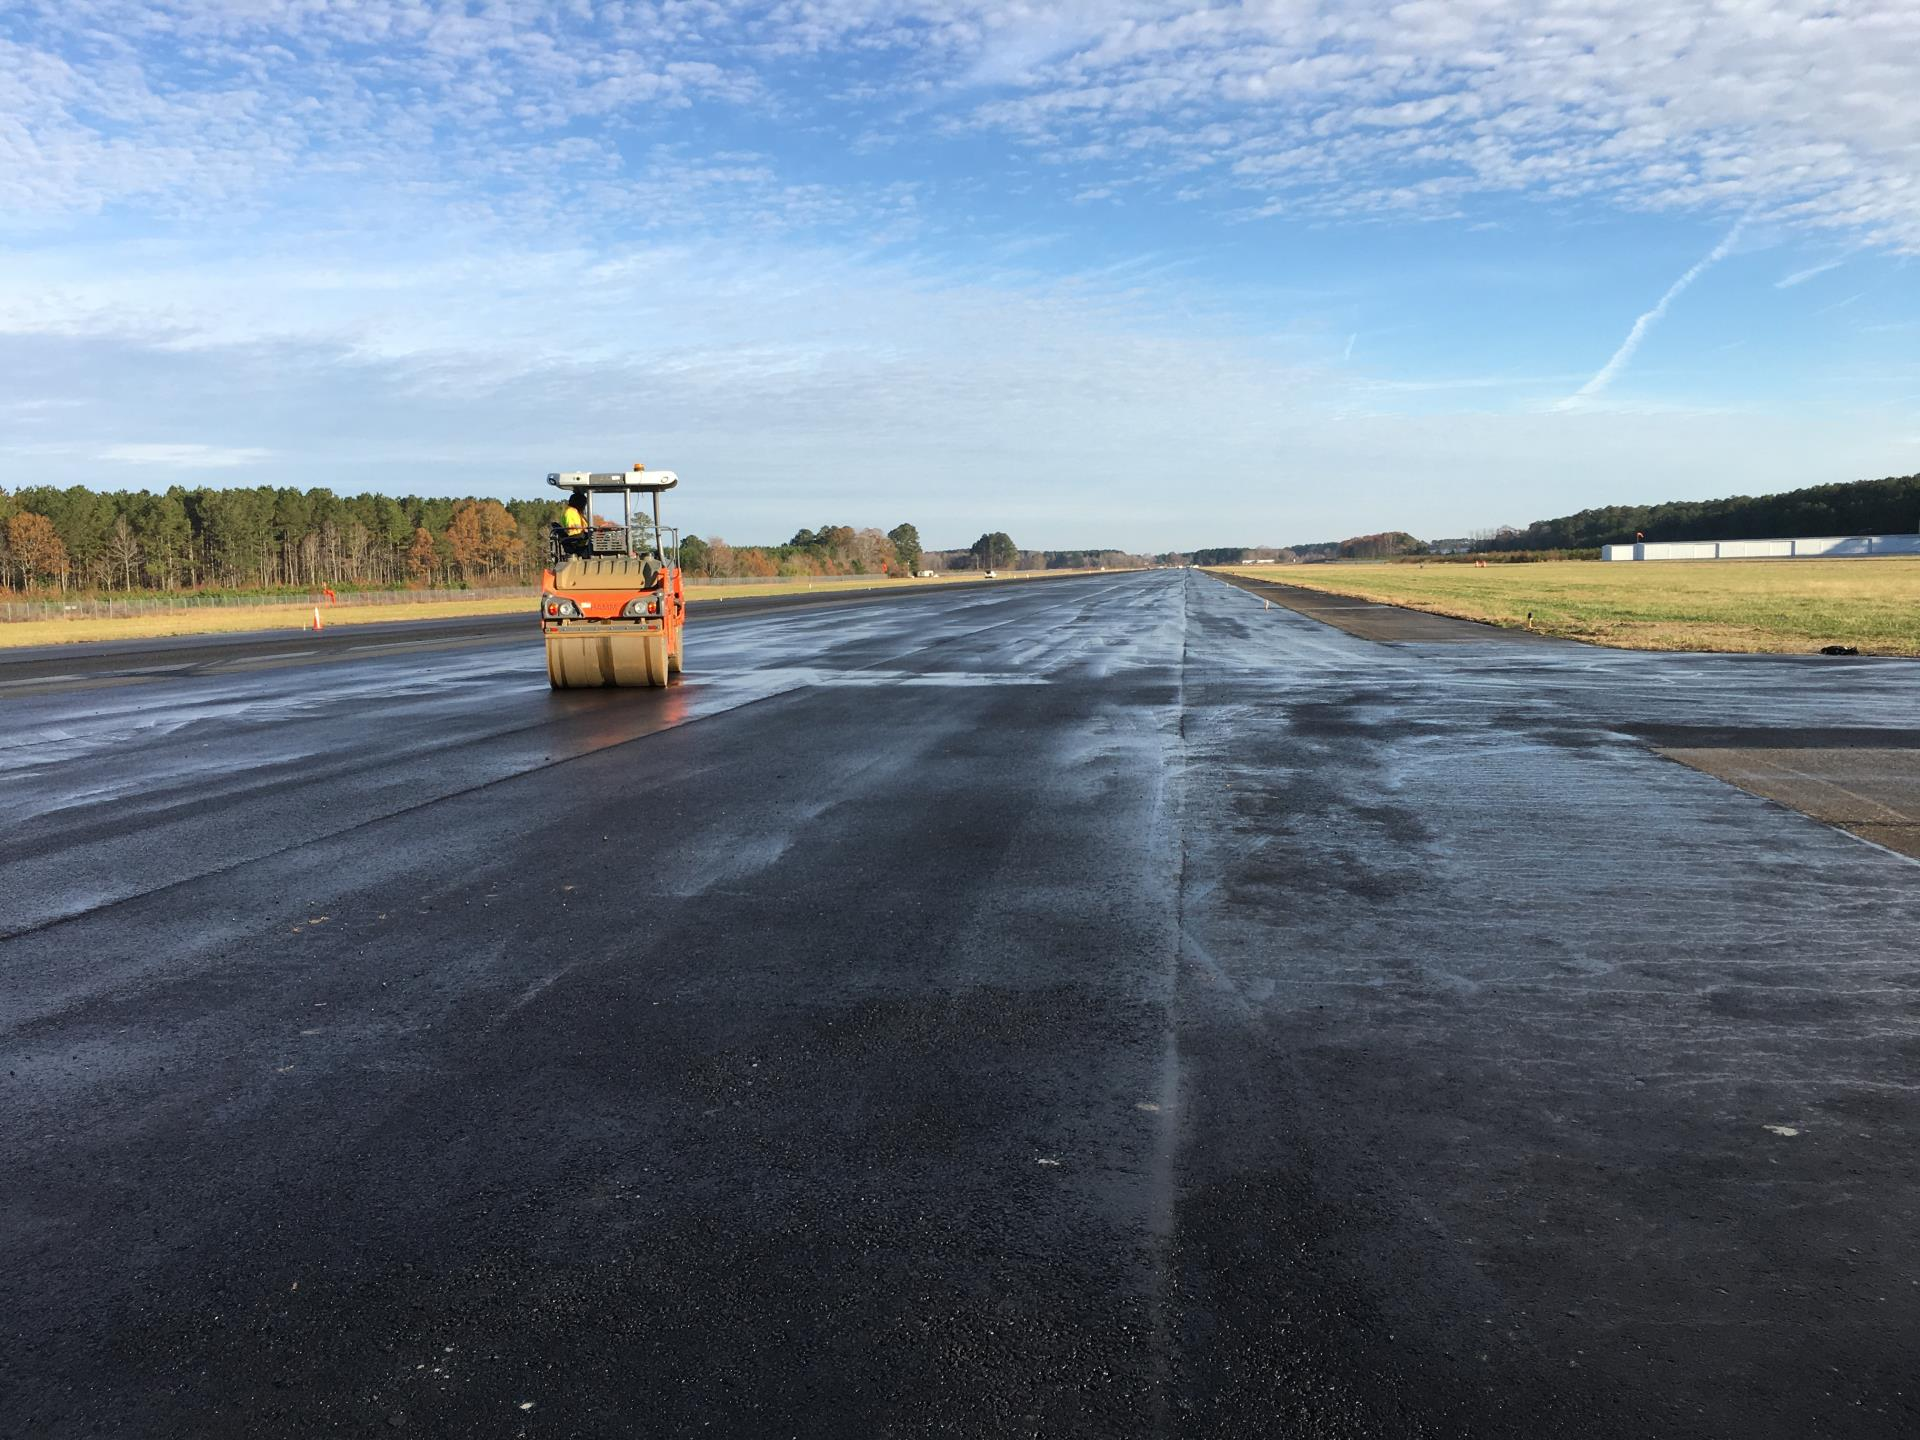 Runway facing North